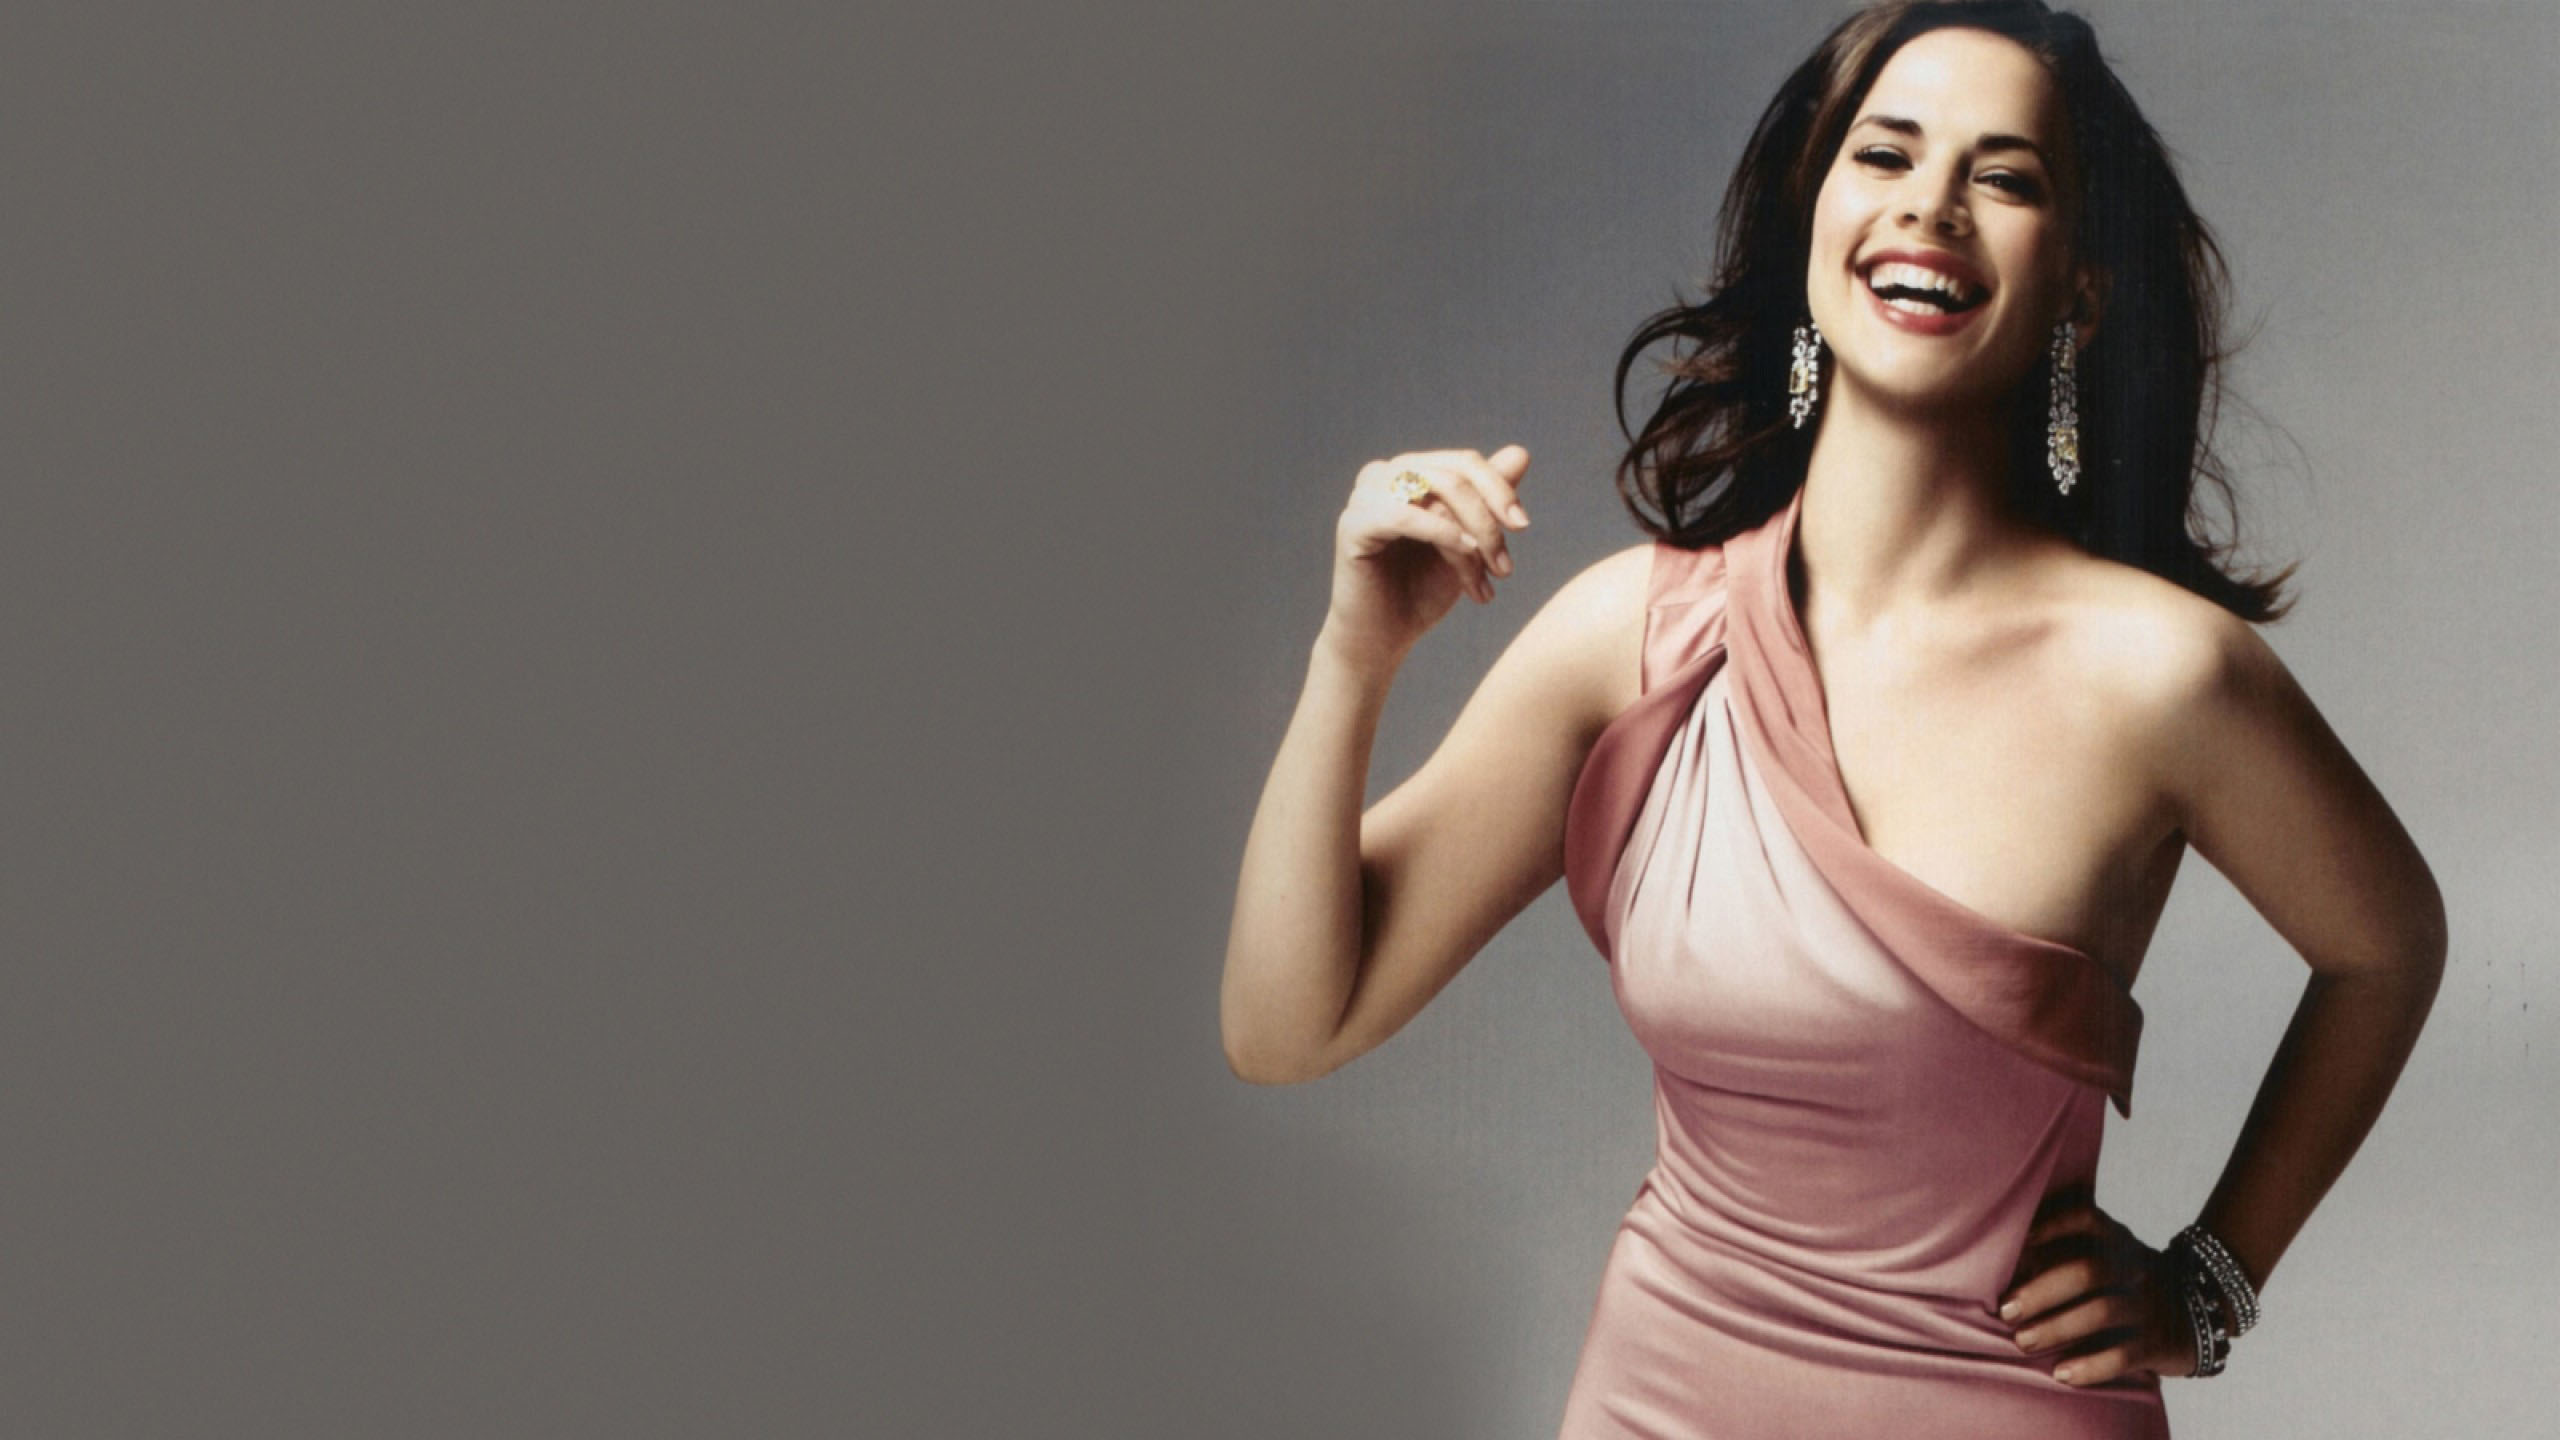 2560x1440 - Hayley Atwell Wallpapers 10